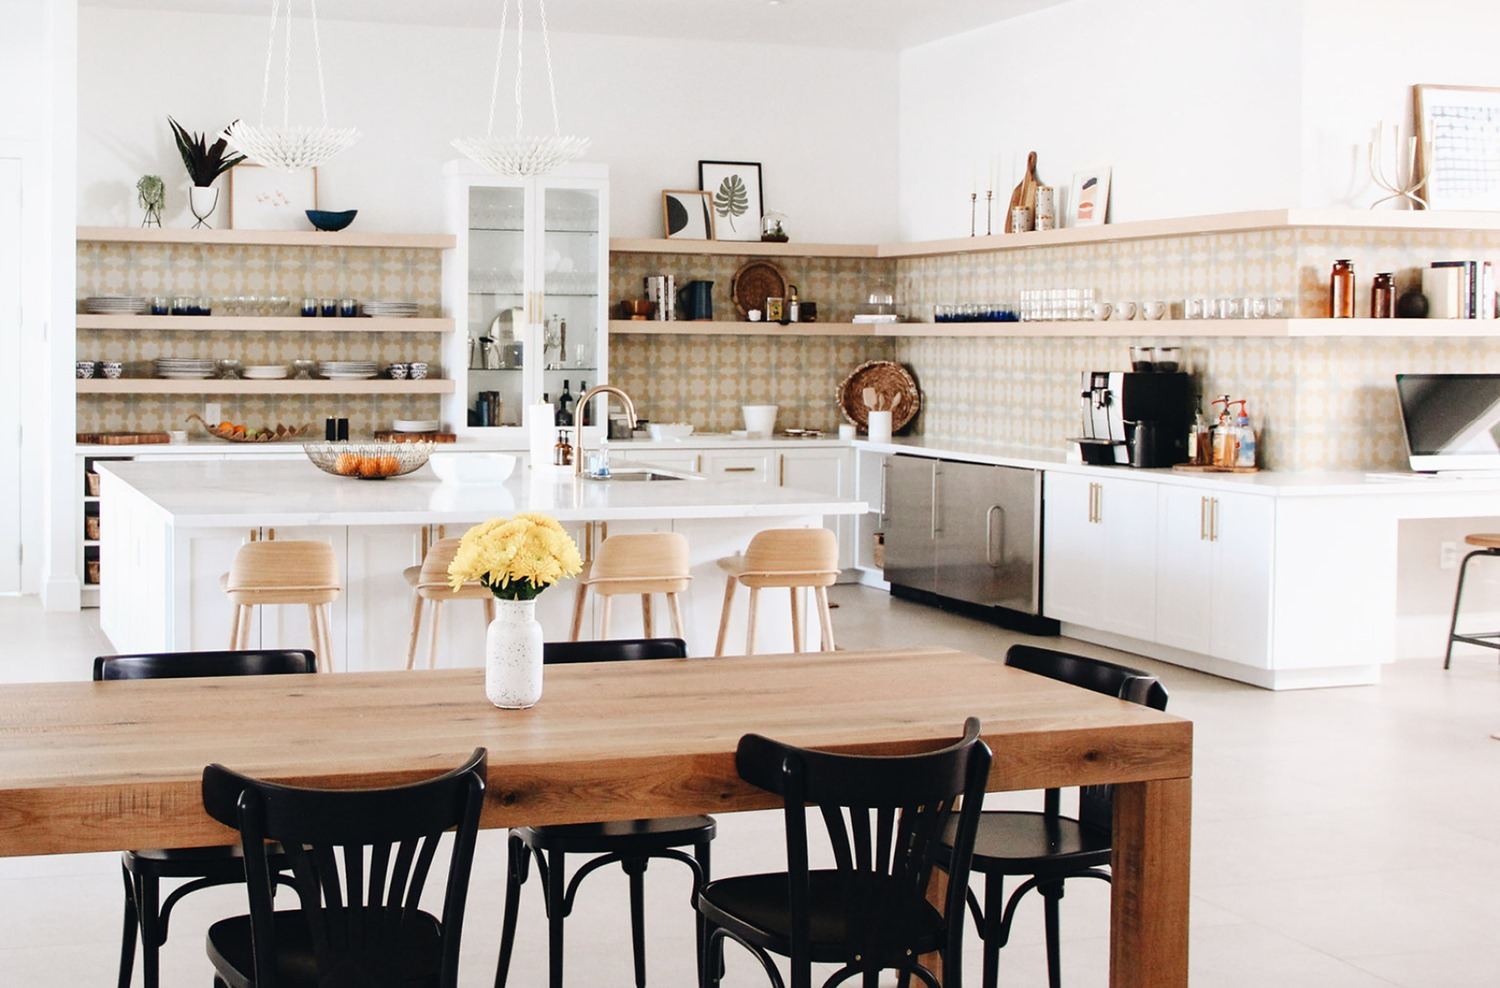 A large kitchen with white cabinets and wall painted white got furnished on the floor with wooden furniture.